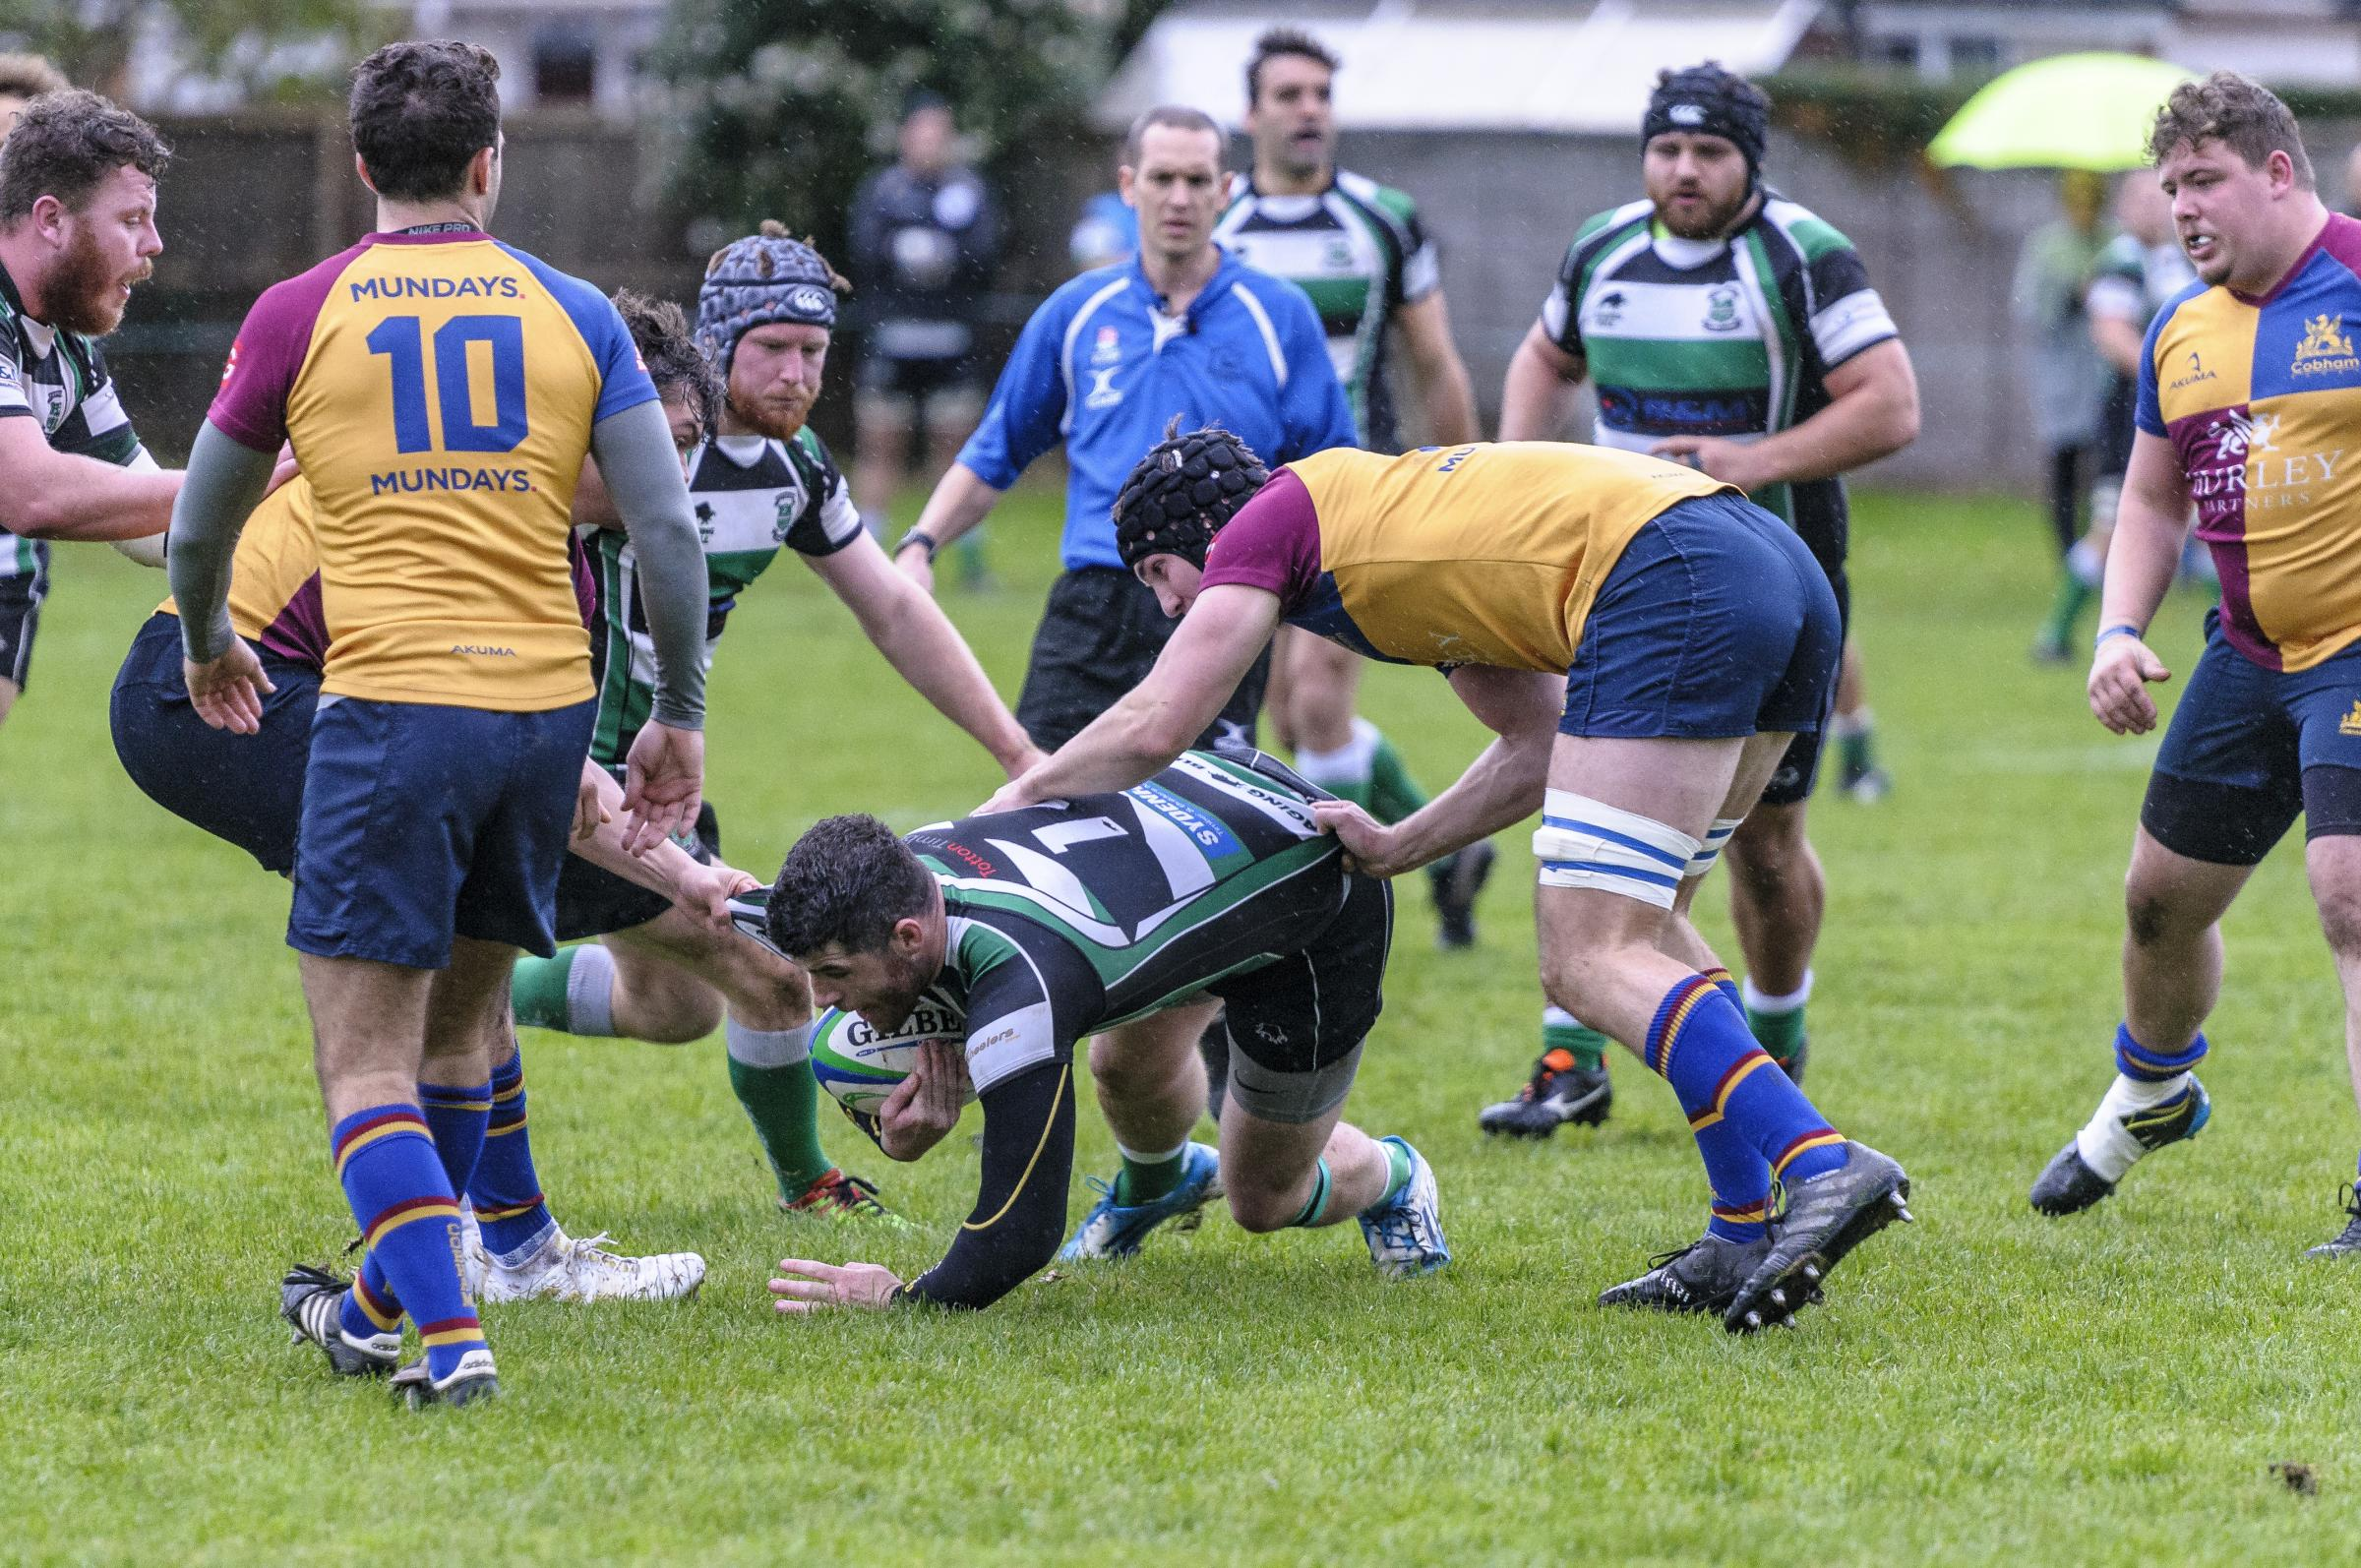 Closer encounter of the Cobham kind for Tottonians